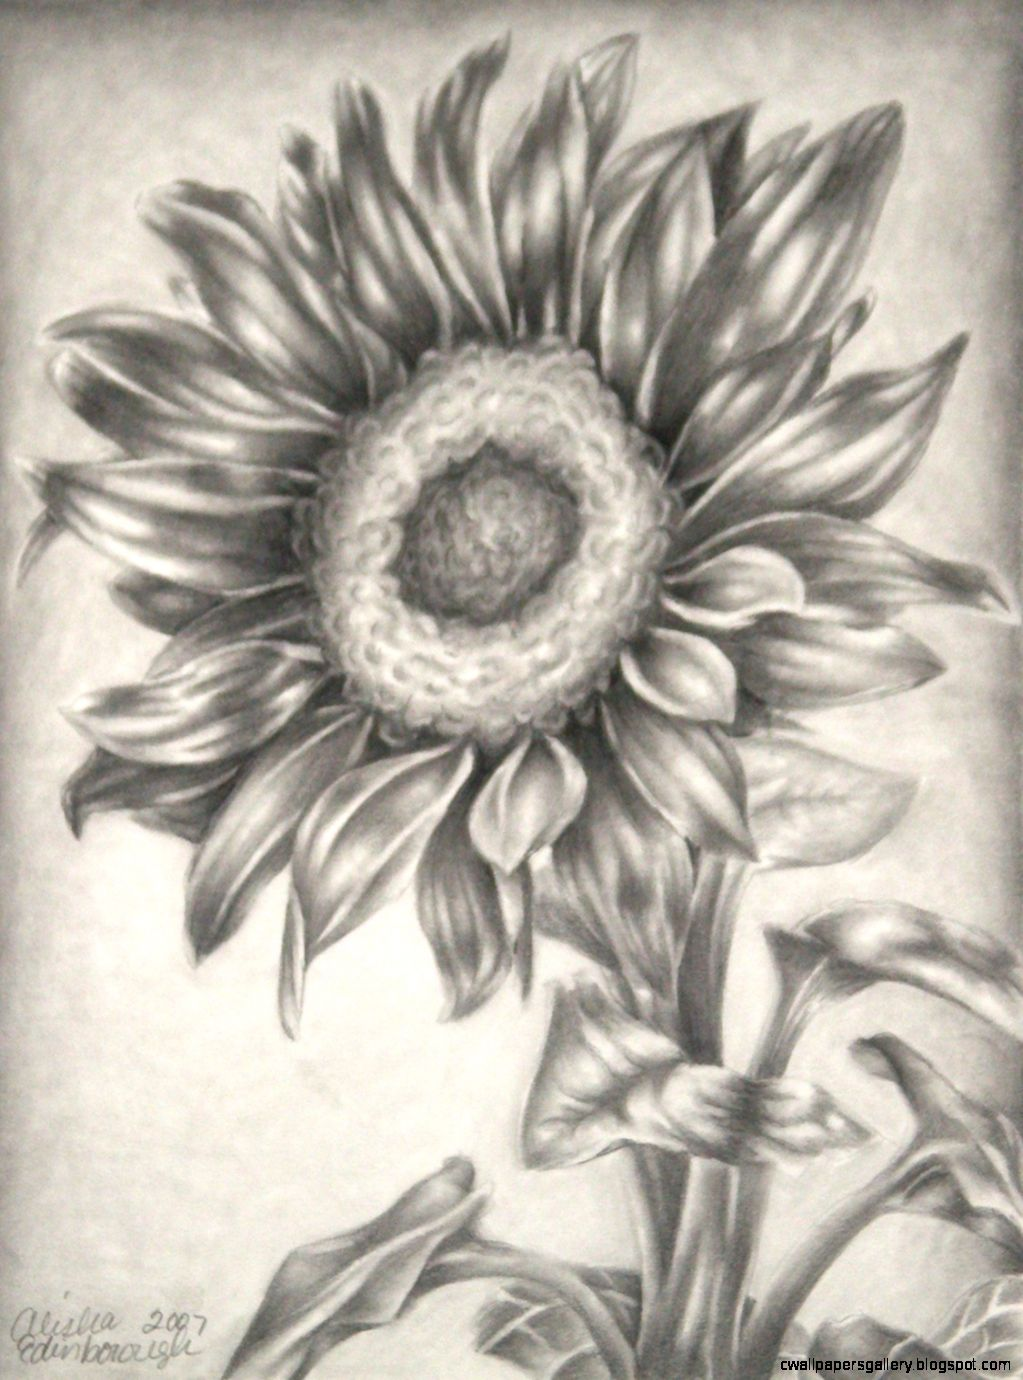 Sunflower Print of the Original Pencil Drawing 8x10 by AlishasArt